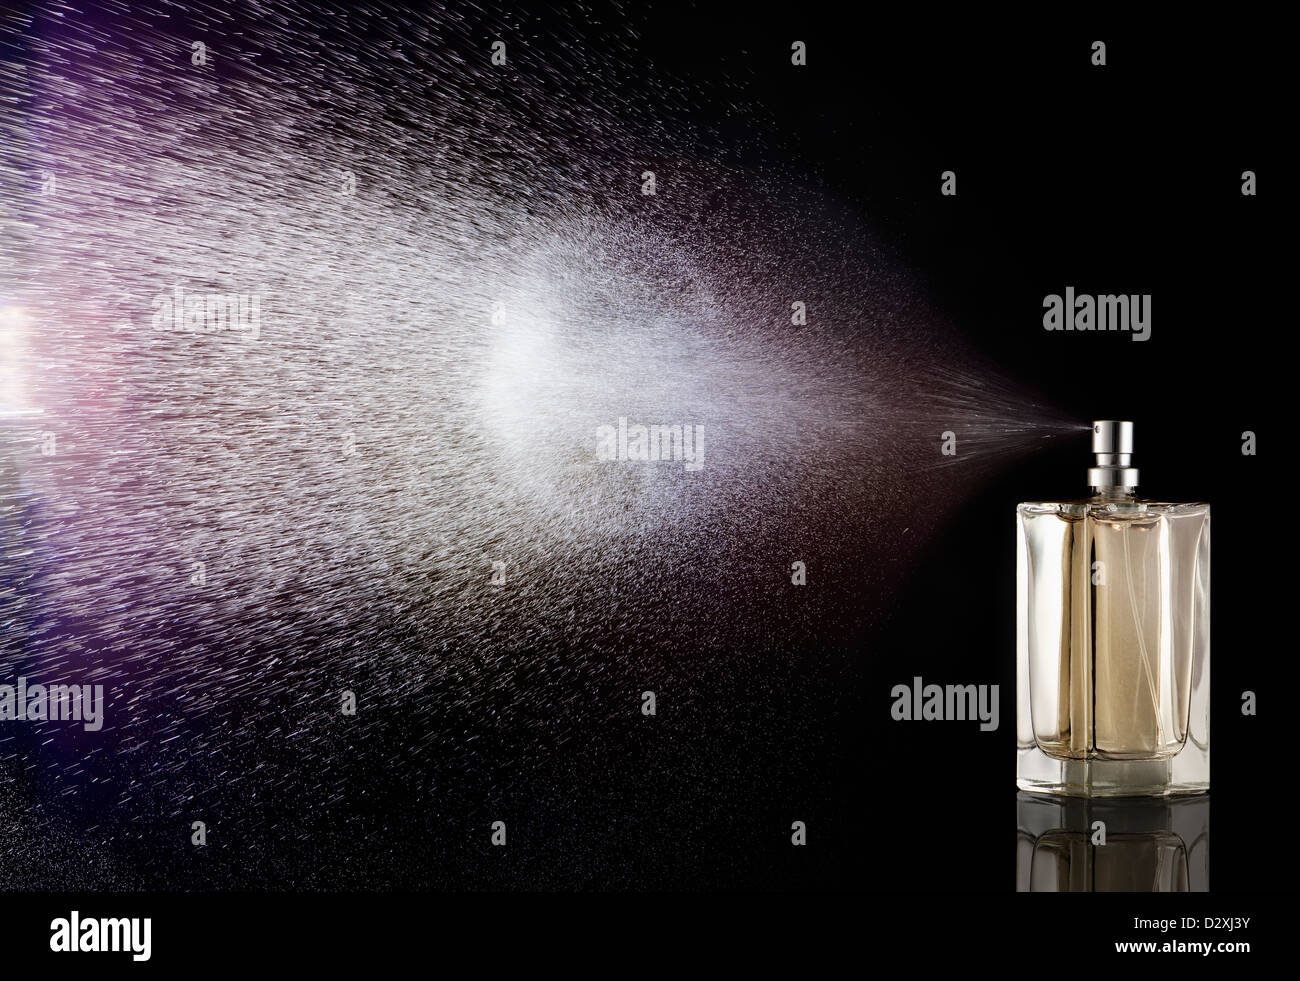 Perfume spraying from bottle - Stock Image